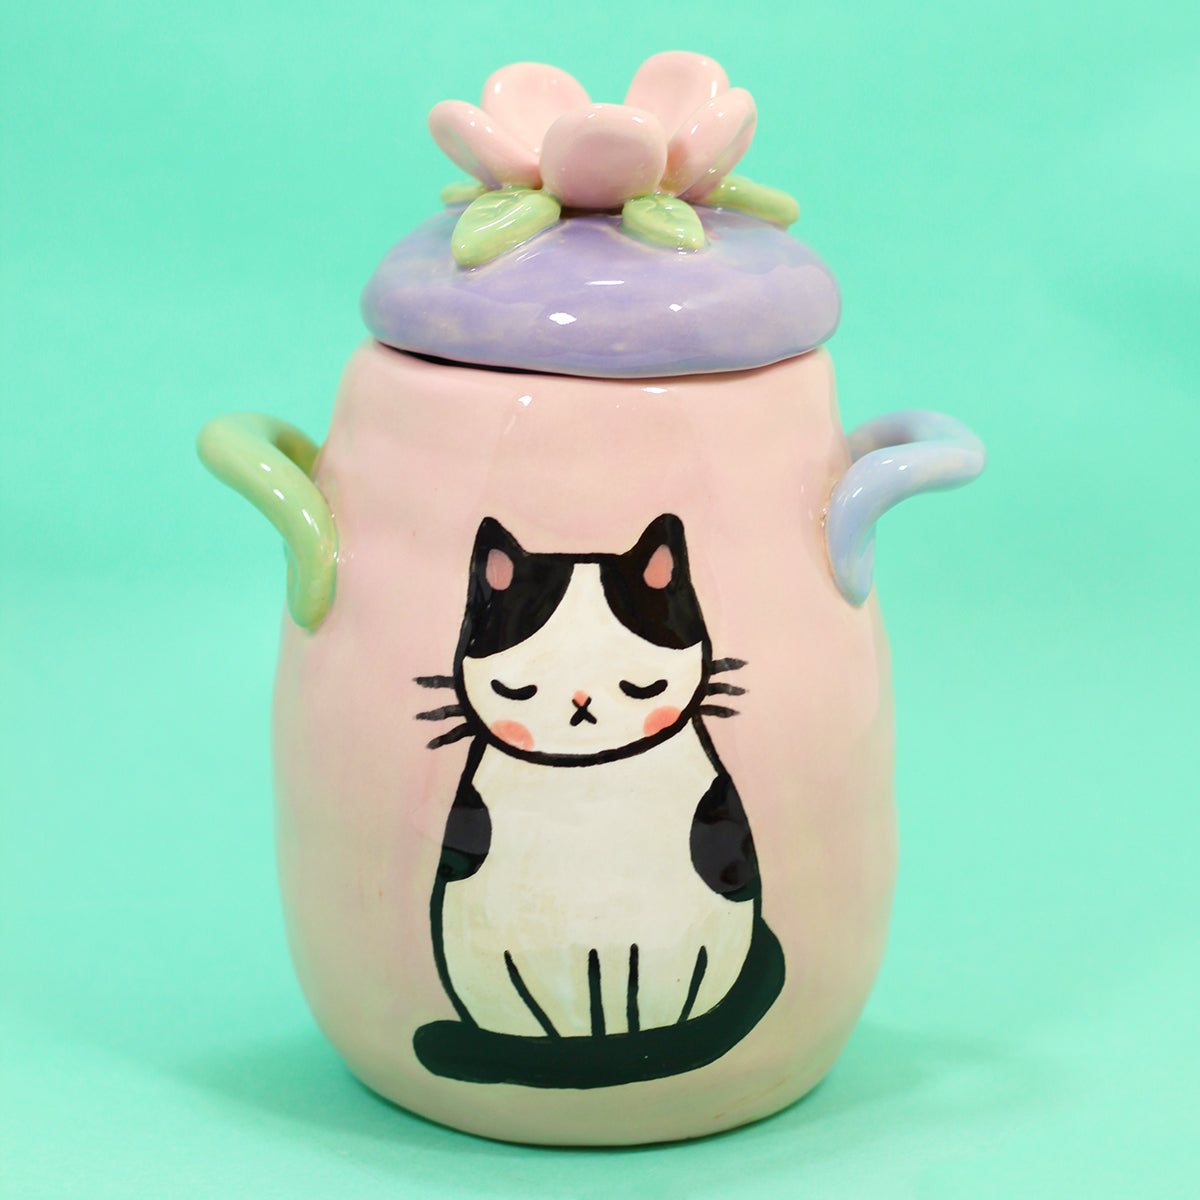 Ceramic Kitty Planter #1173 - XXL